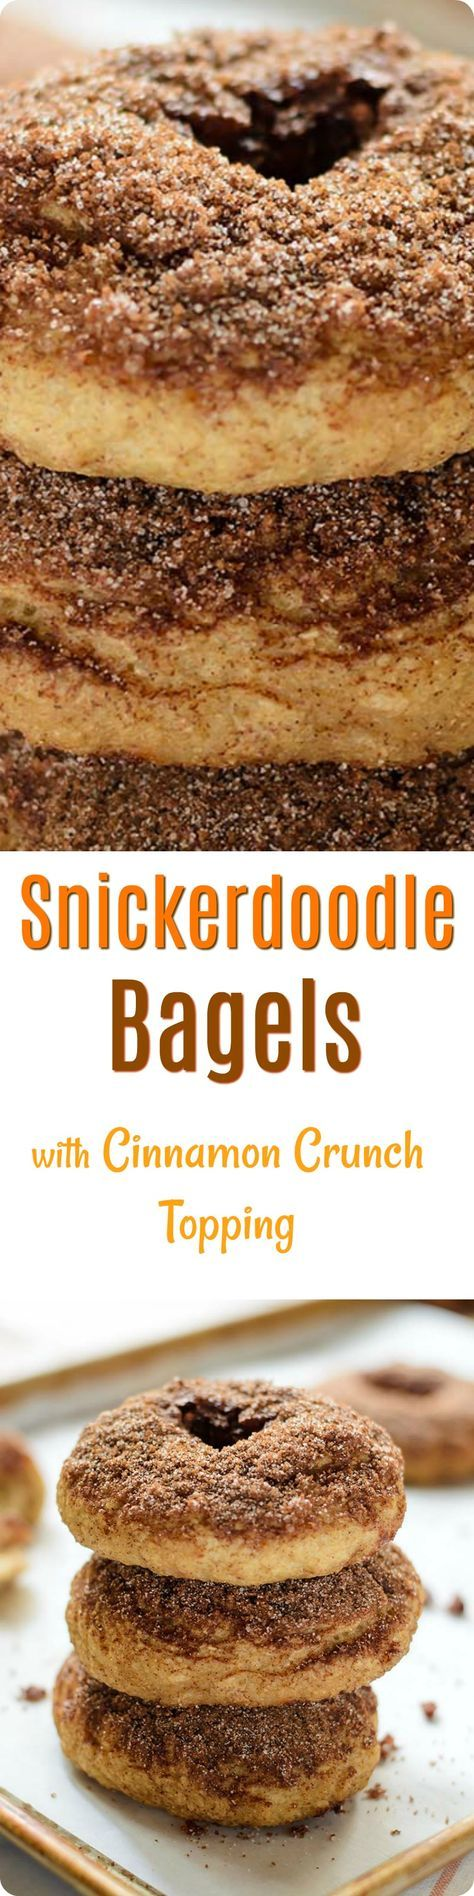 Snickerdoodle Bagels with Cinnamon Crunch Topping | Soft and chewy homemade bagels with cinnamon crunch topping that taste just like a snickerdoodle cookie! Find recipe at redstaryeast.com.